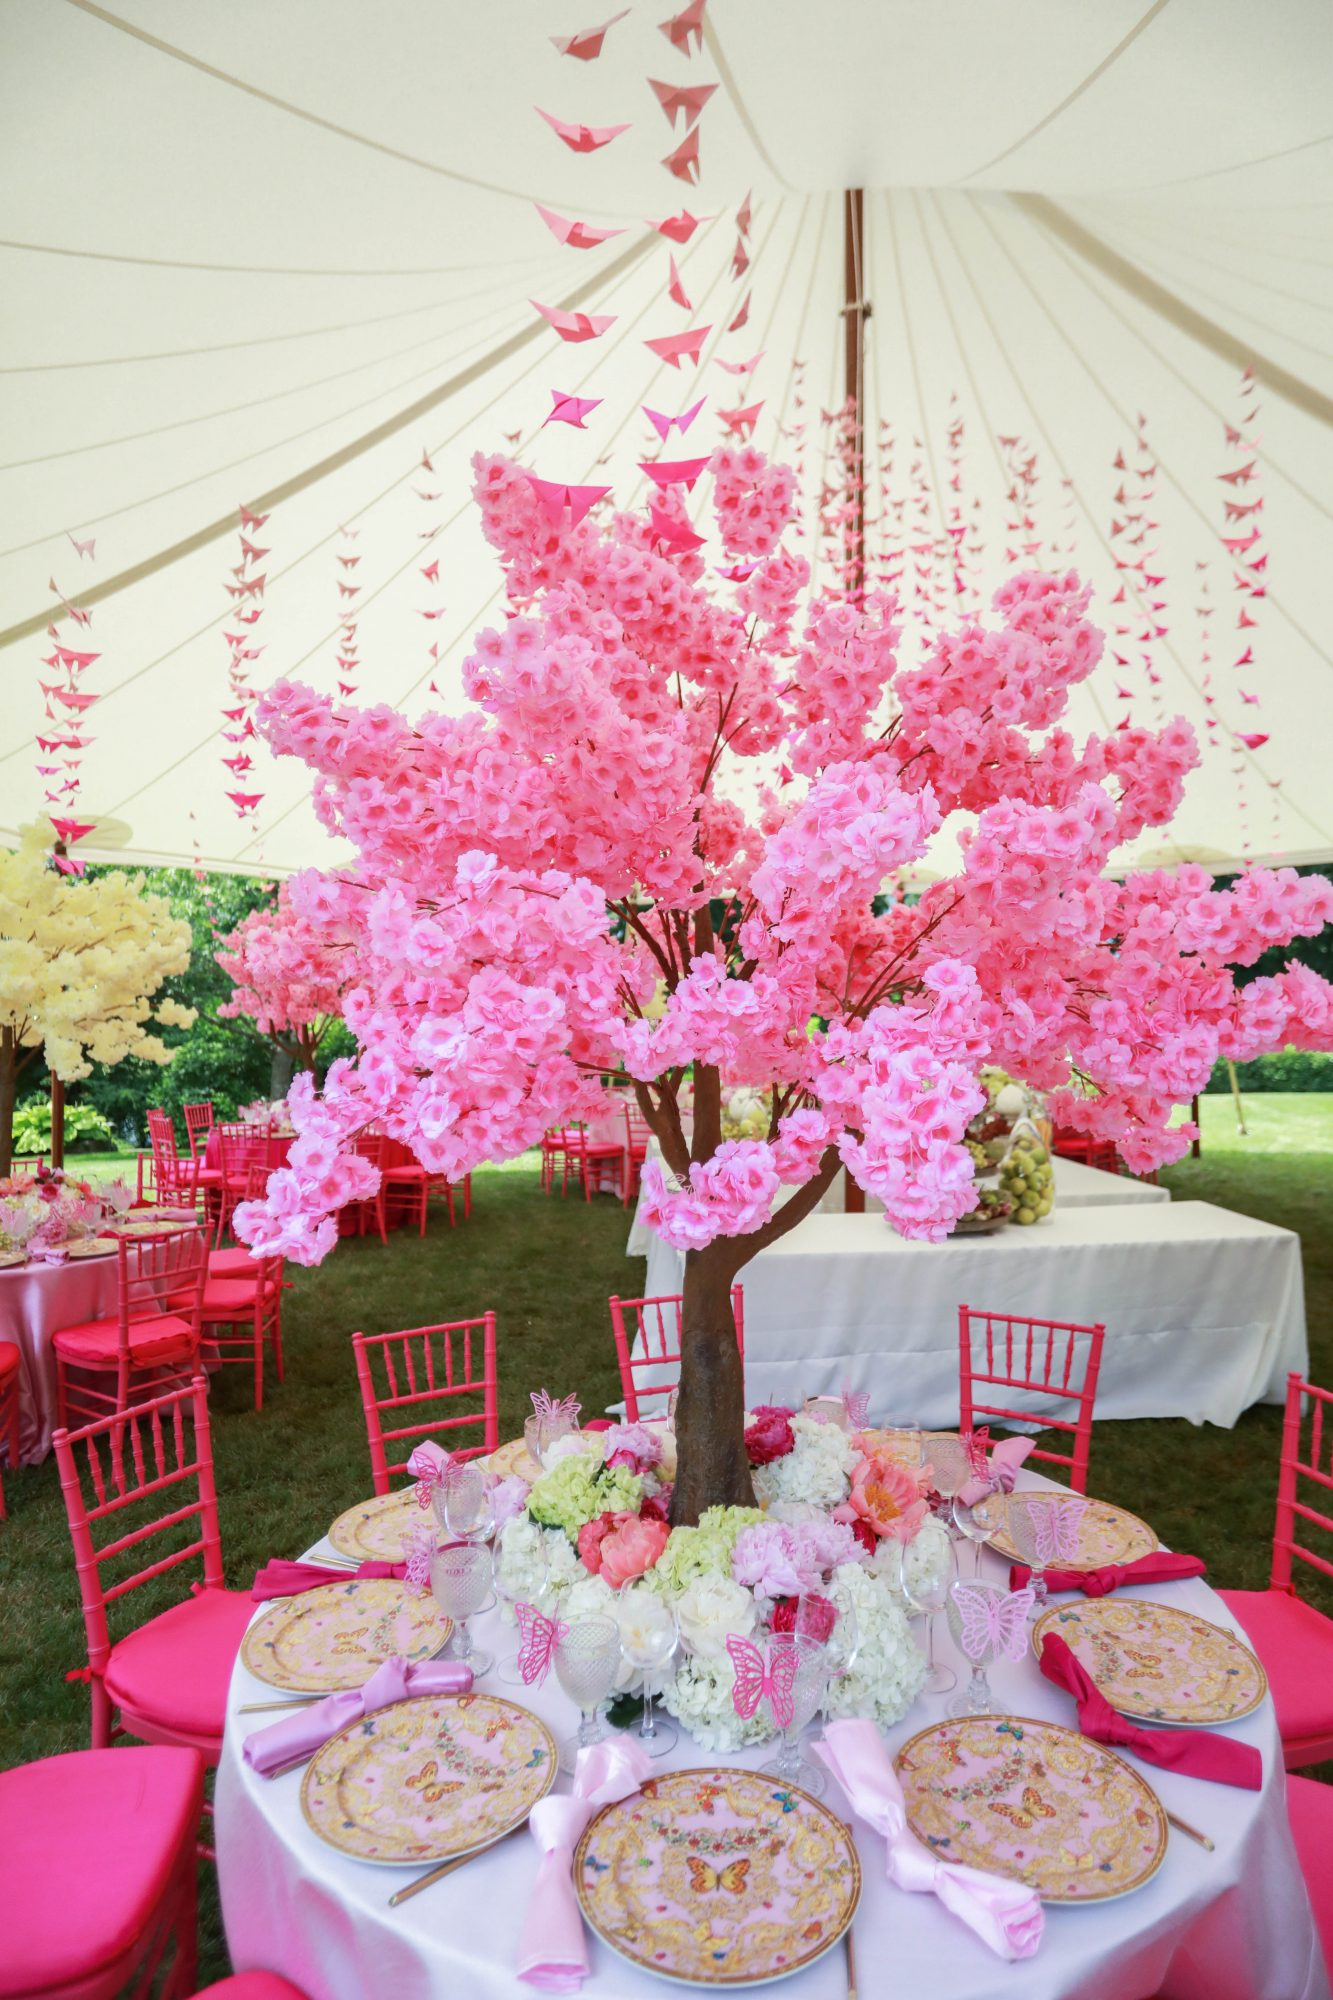 bridal shower ping table setting decor under tent